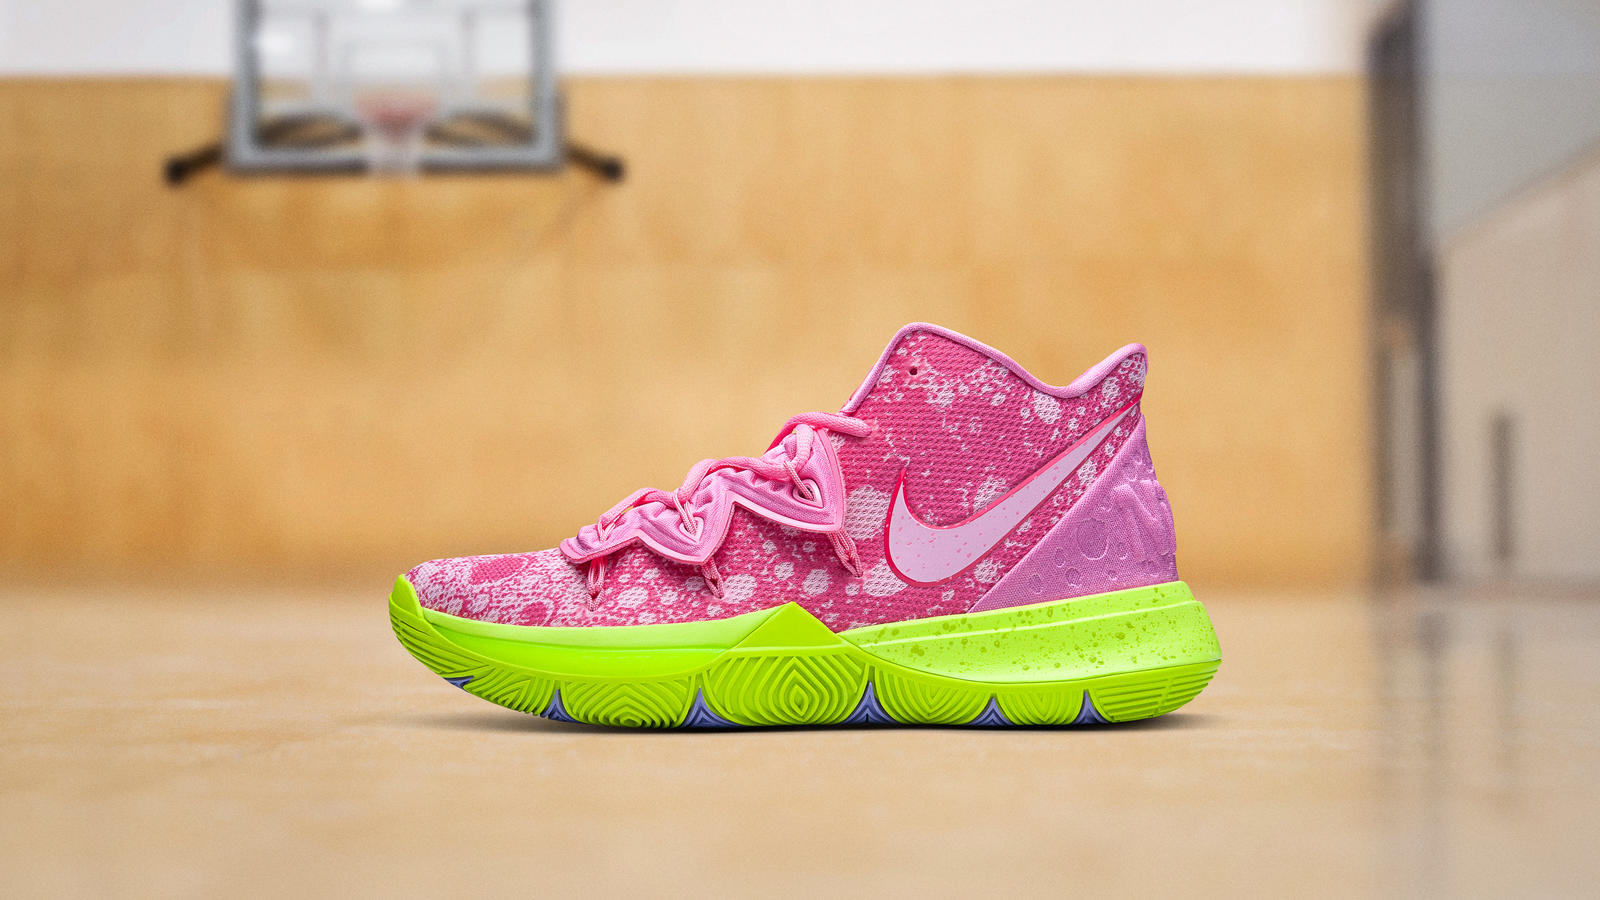 Nike Kyrie 5 x SpongeBob SquarePants Collection 12